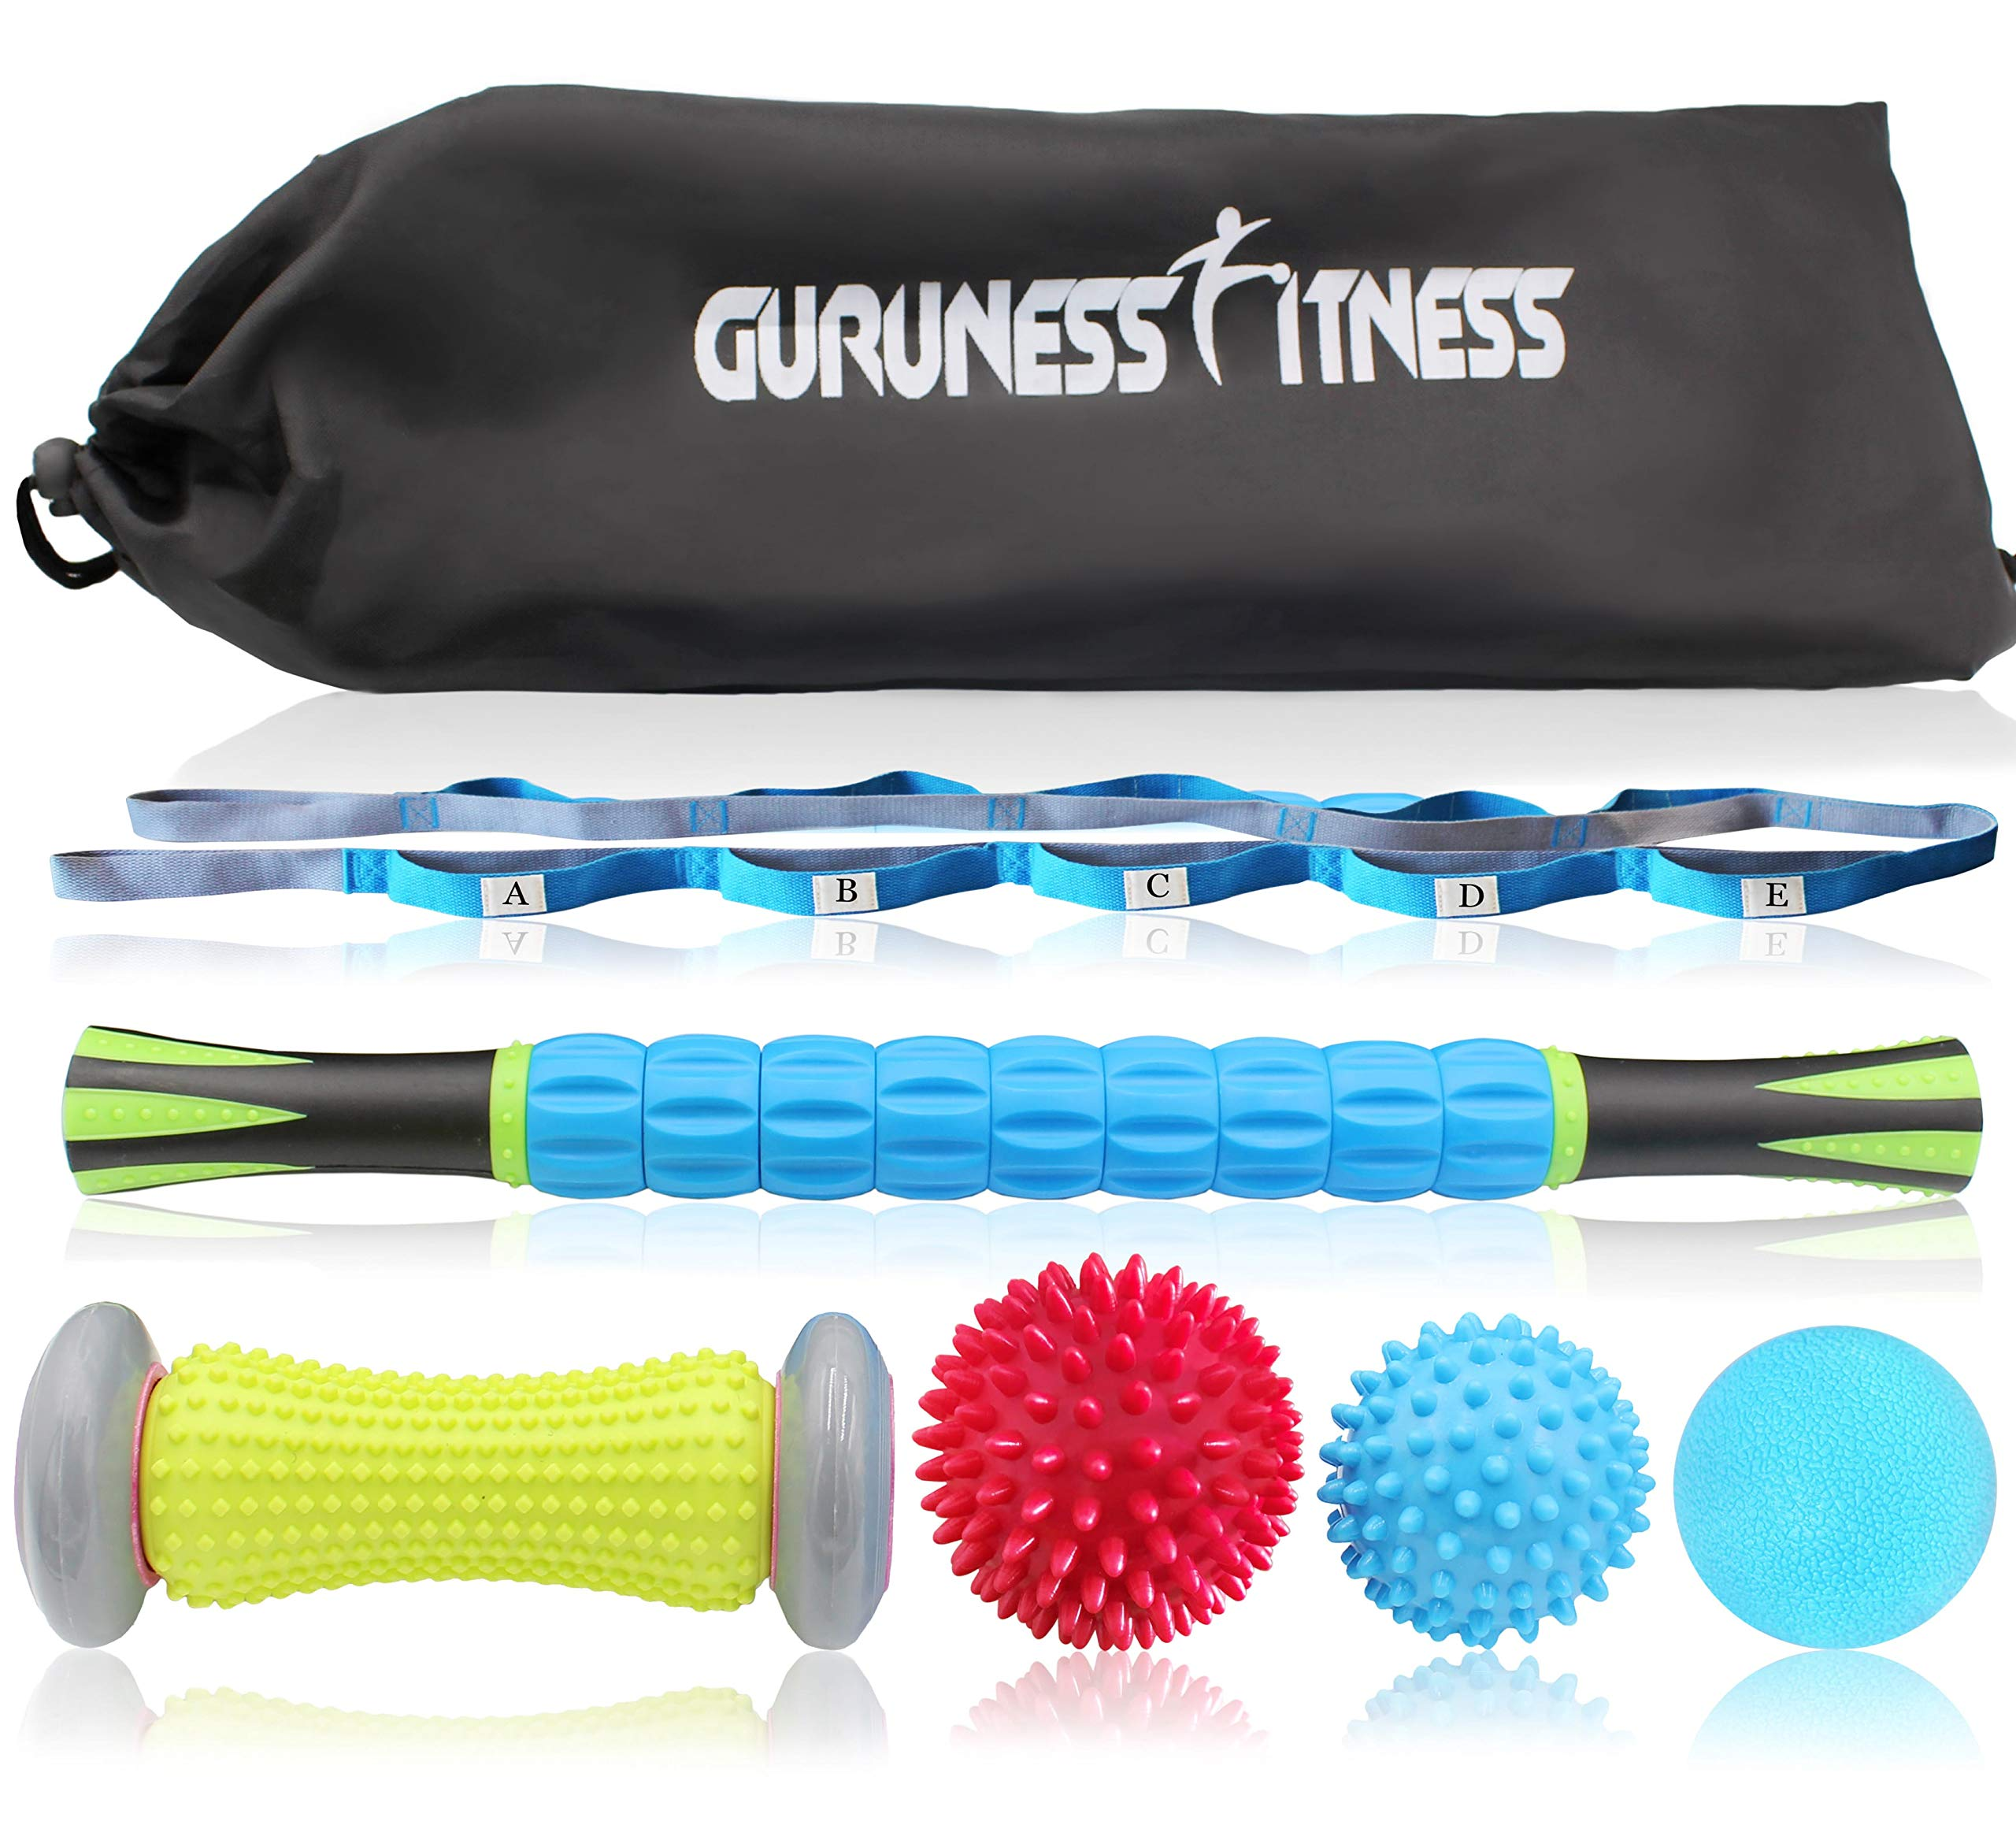 Massage Ball Set & Muscle Roller Massager for Deep Tissue Trigger, Pain Relief, Plantar Fasciitis Foot Recovery - 1 Stretch Strap, 1 Roller Stick, 1 Massage Roller, 2 Spiky Balls & 1 Lacrosse Ball